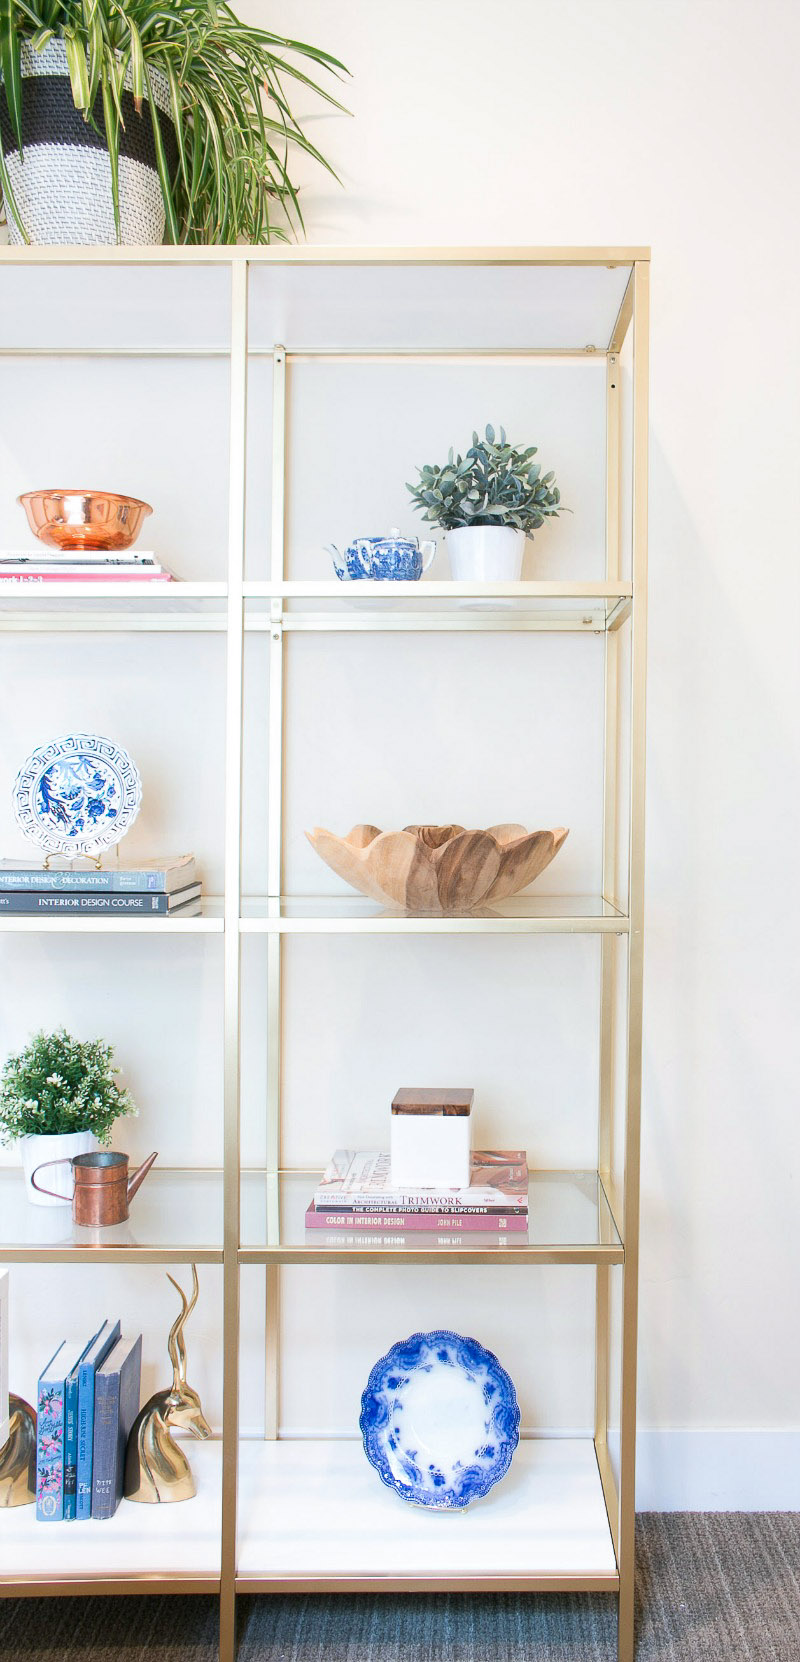 etagere in Lindsay Hill Interiors office space